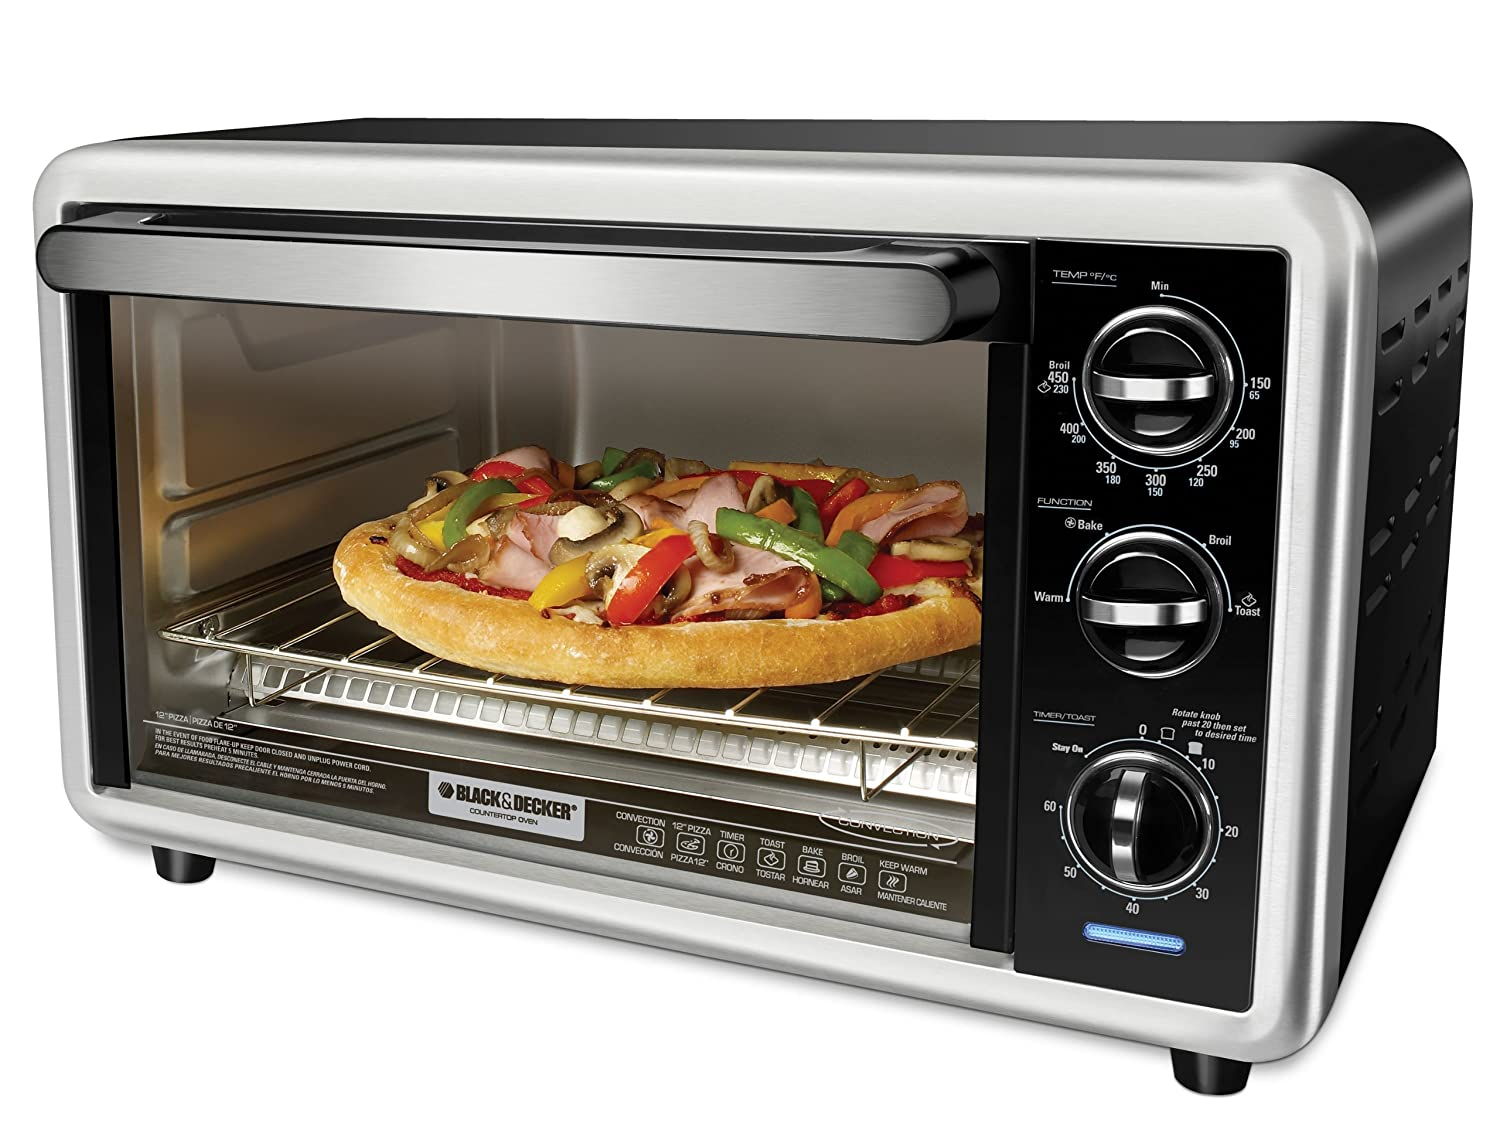 Food Network Countertop Convection Oven With Rotisserie Top 10 Best Pizza Convection Ovens 2016 2017 On Flipboard